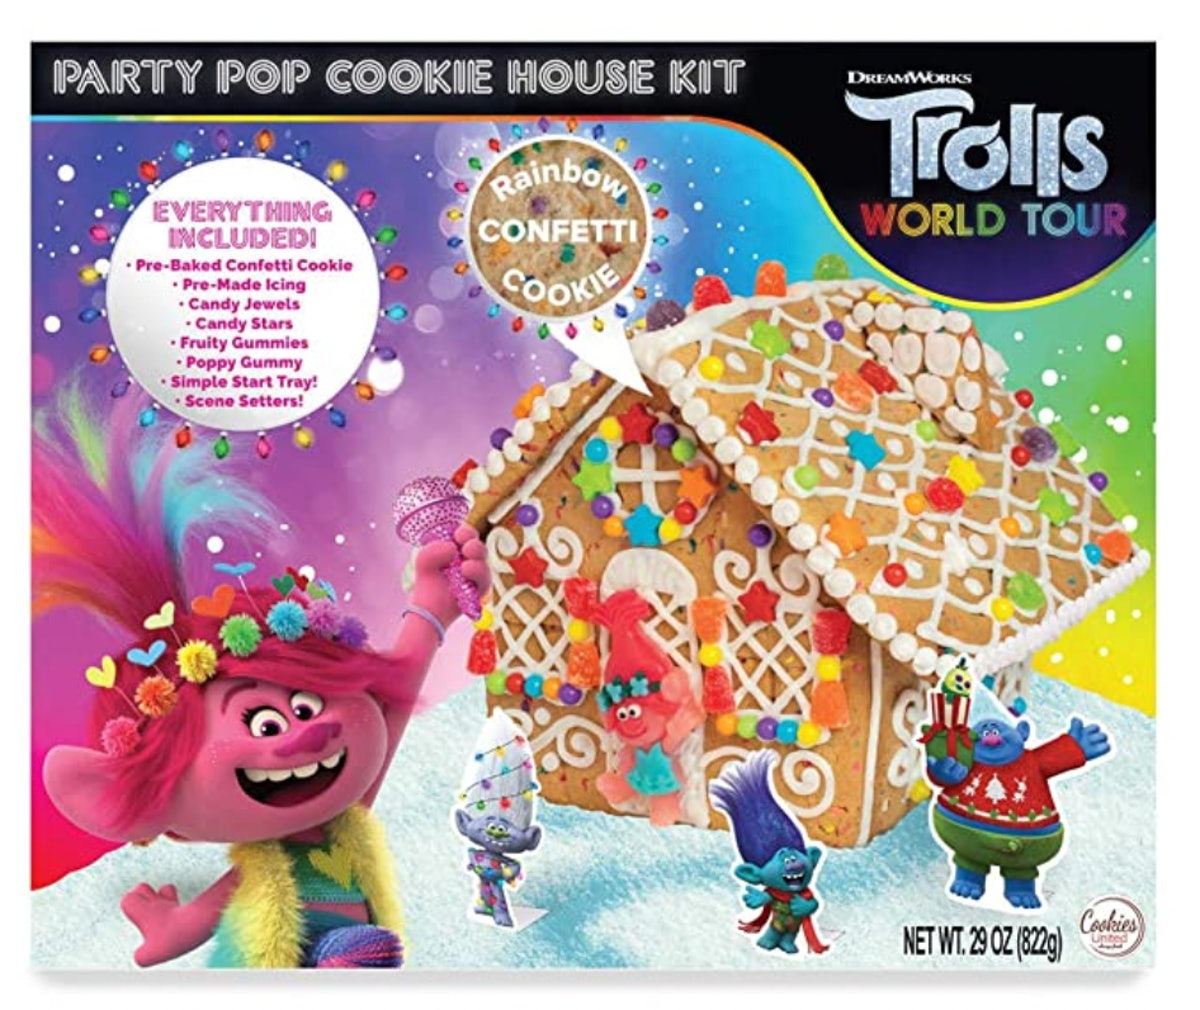 World Tour Trolls Holiday House Gingerbread Cookie Kit